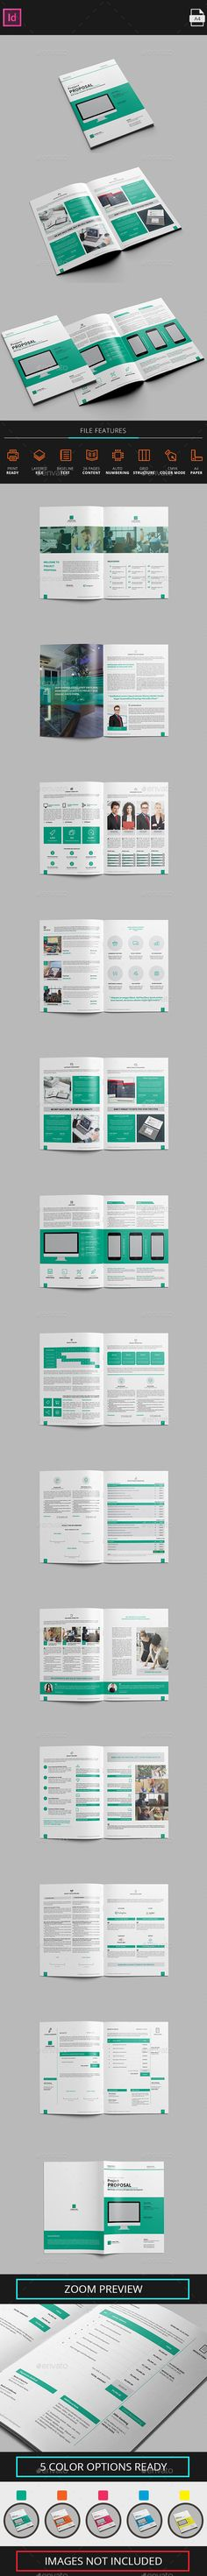 Corporate Clean Business Proposal Template corporateproposal